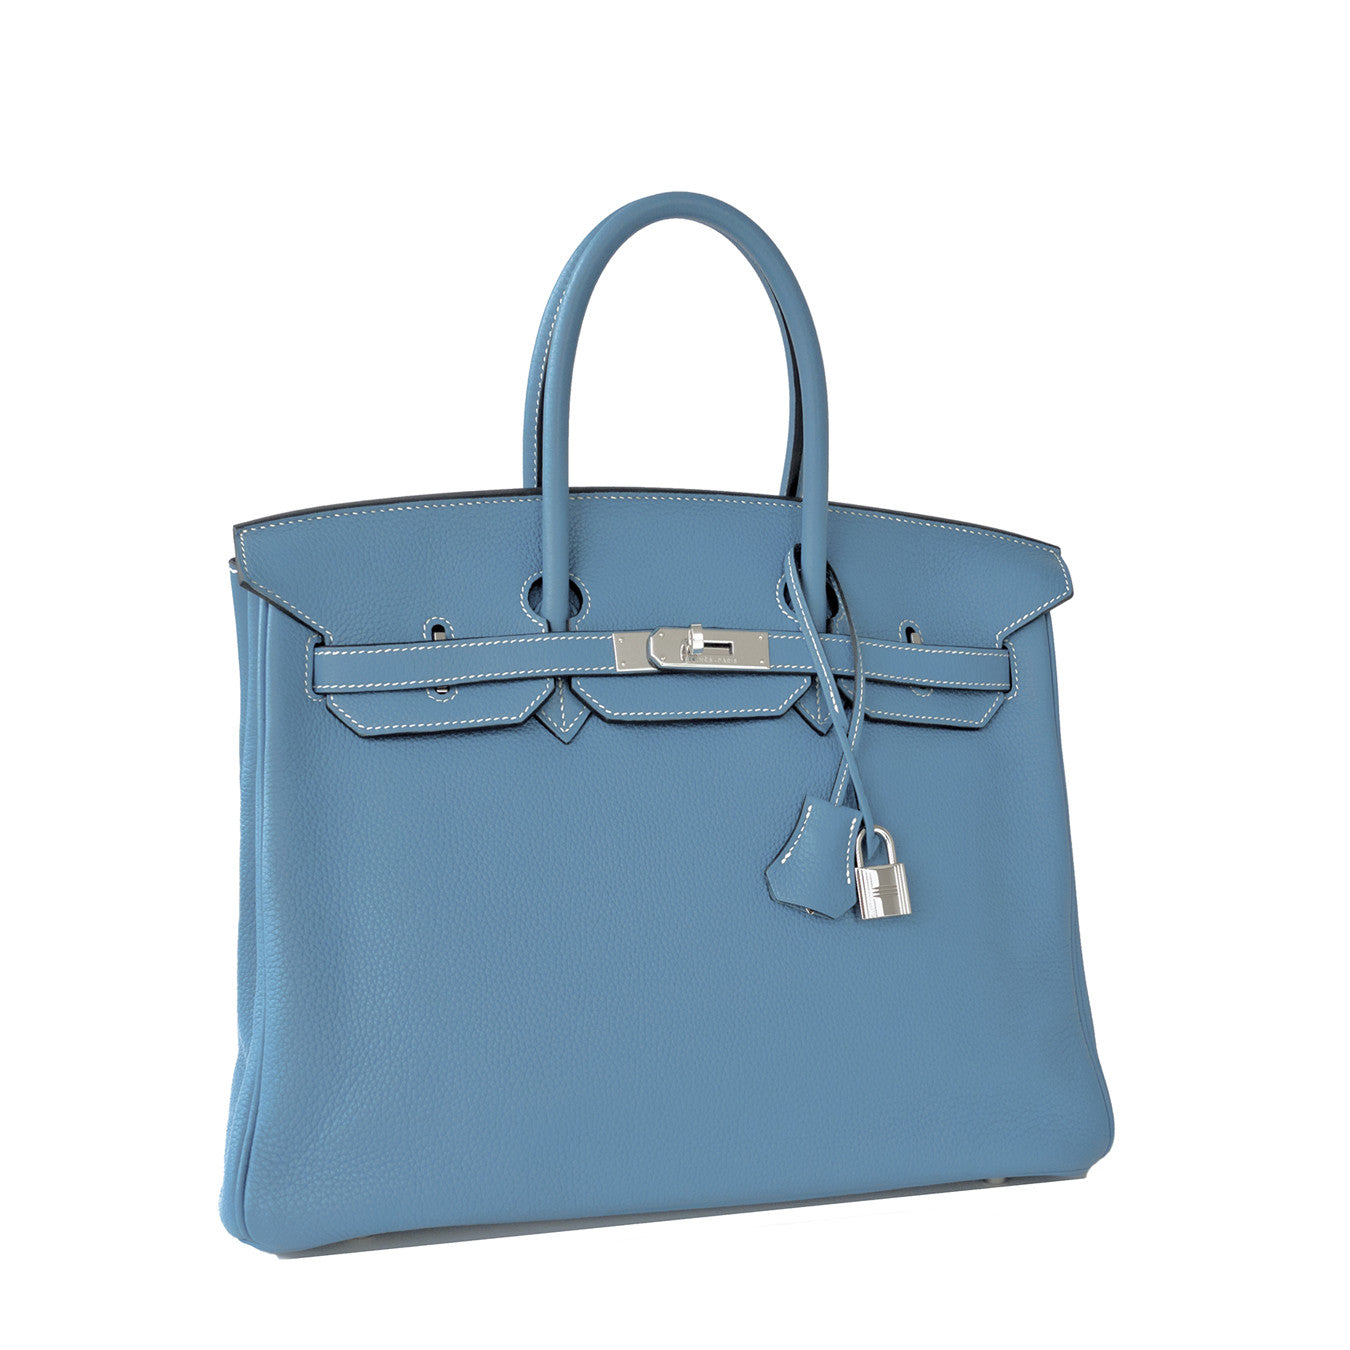 12ec622111663 ... Hermes Blue Jean 35cm Birkin Leather Palladium Tote Satchel Chic and  Sporty ...